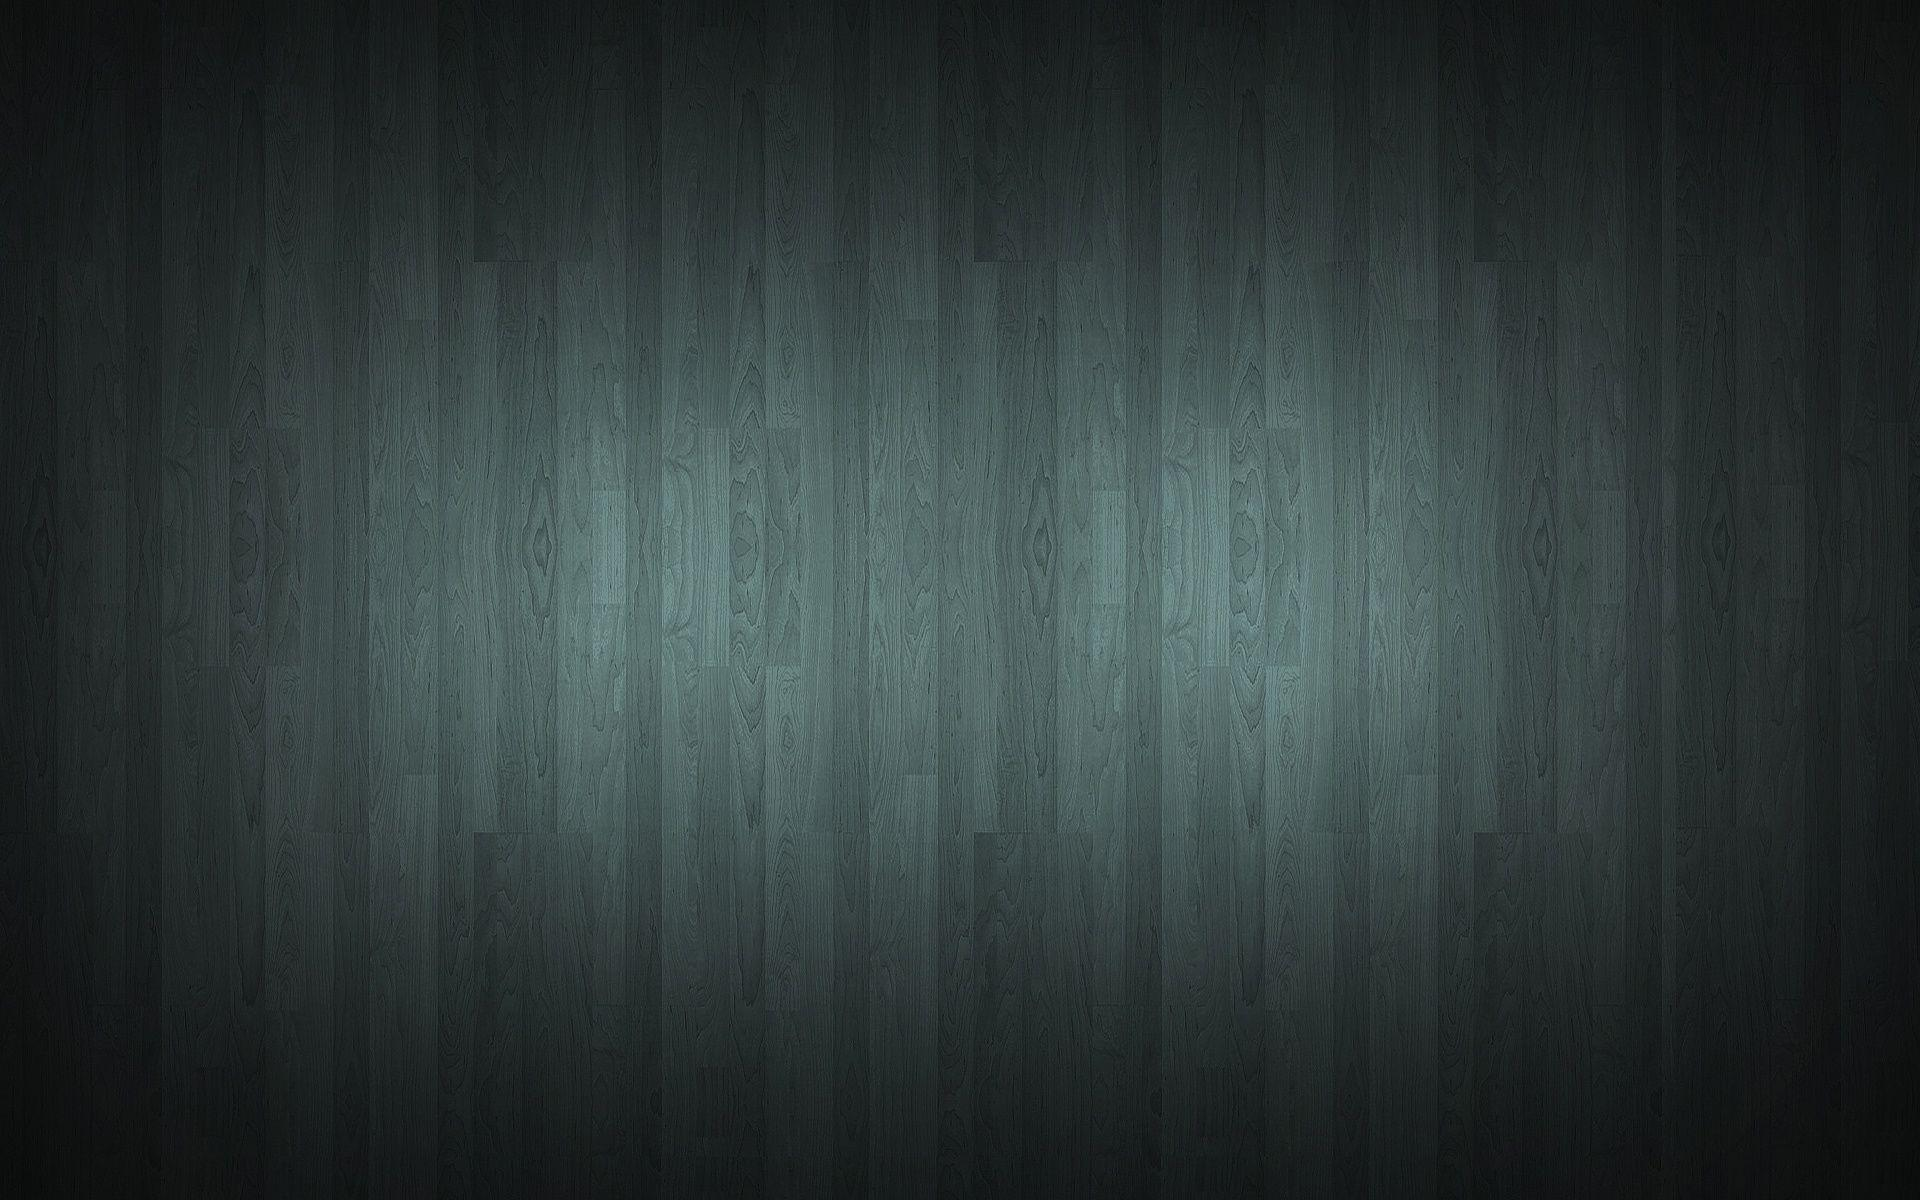 Soft Green Wooden Background Wallpaper and Stock Photo